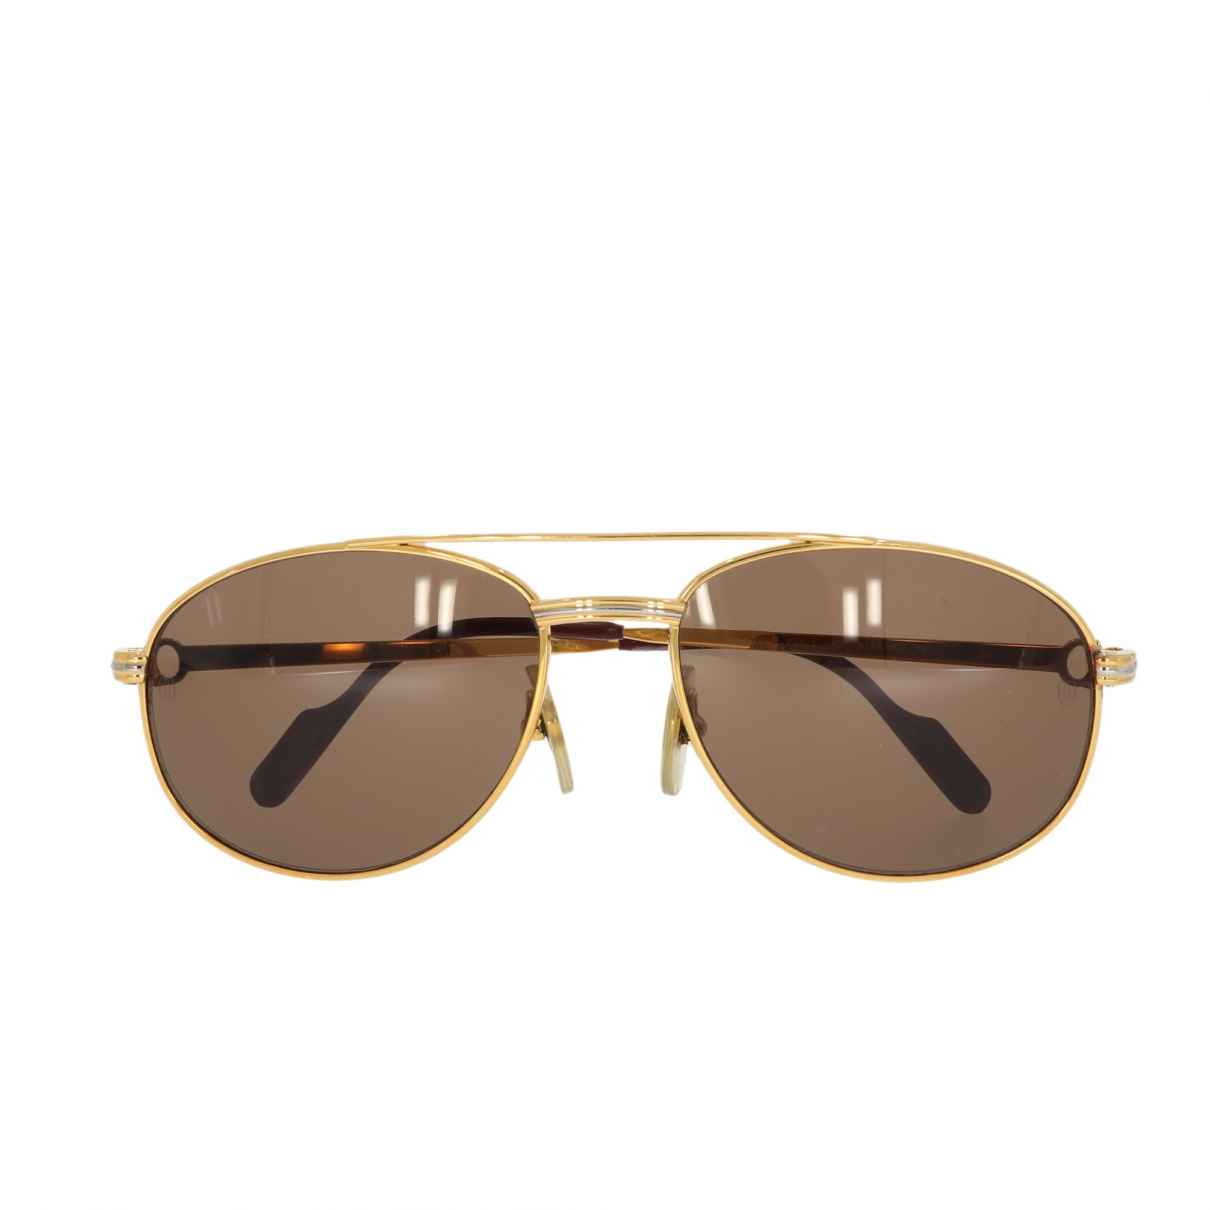 Cartier N Gold Metal Sunglasses for Women N